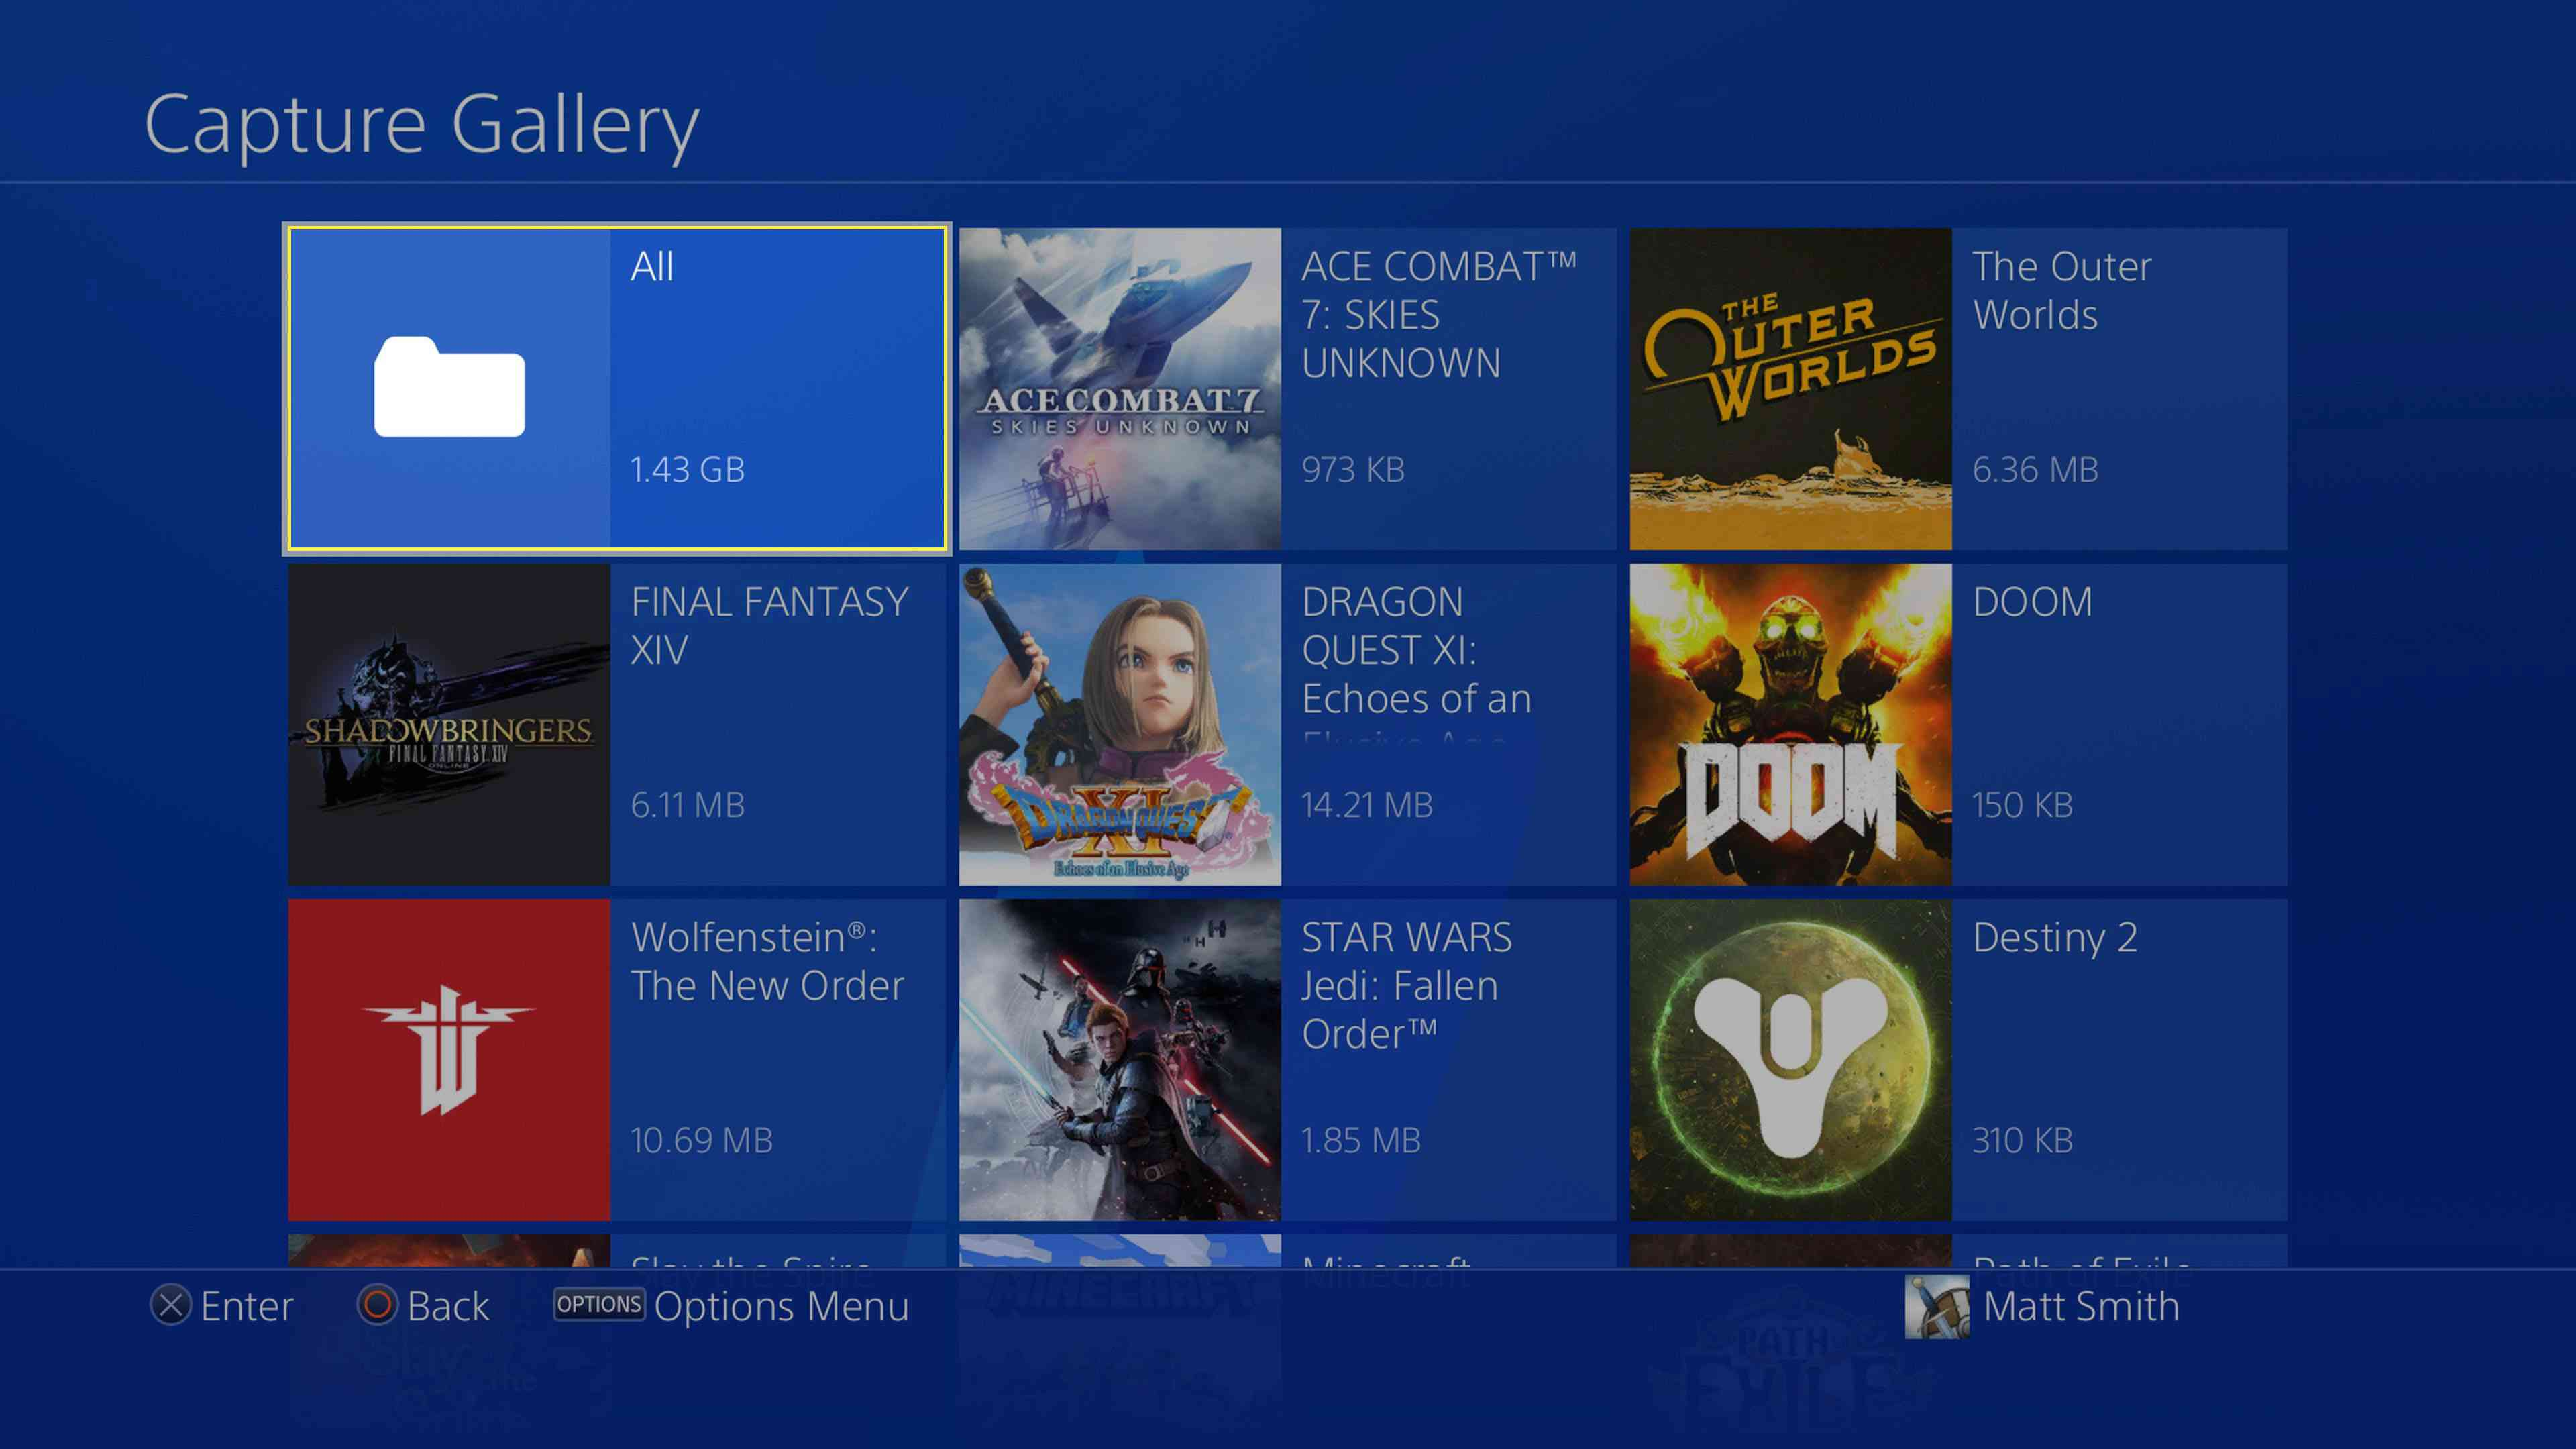 PlayStation 4 Capture Gallery open with All folder selected.